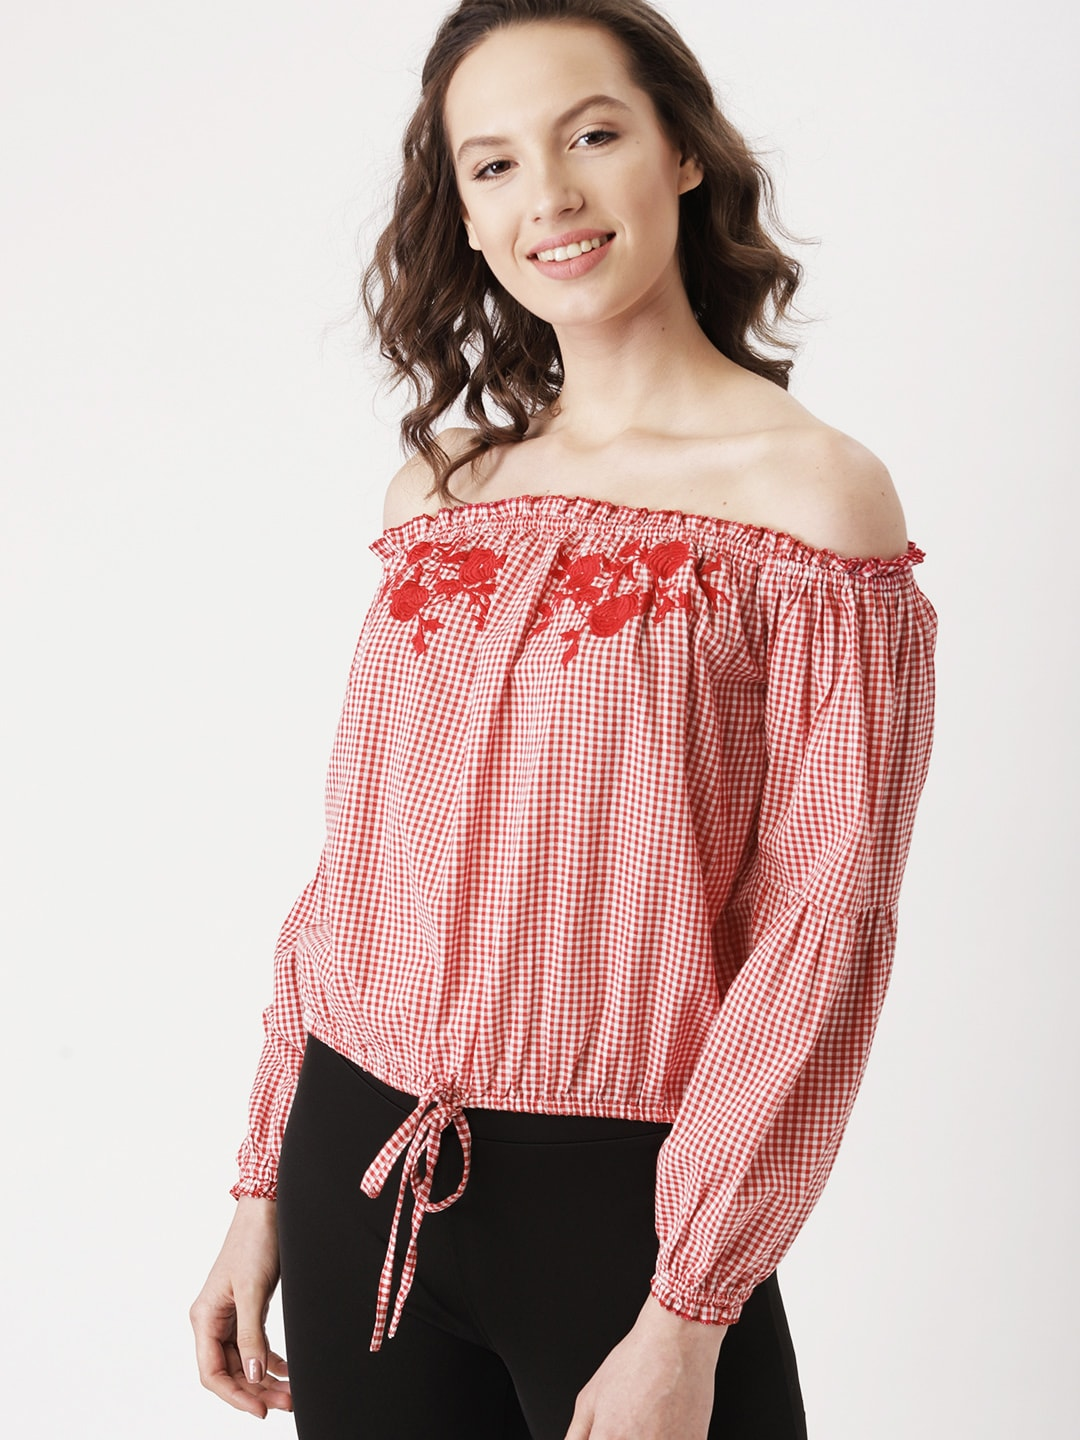 b76bd04d48e0f2 Bardot Tops - Buy Bardot Top Online in India